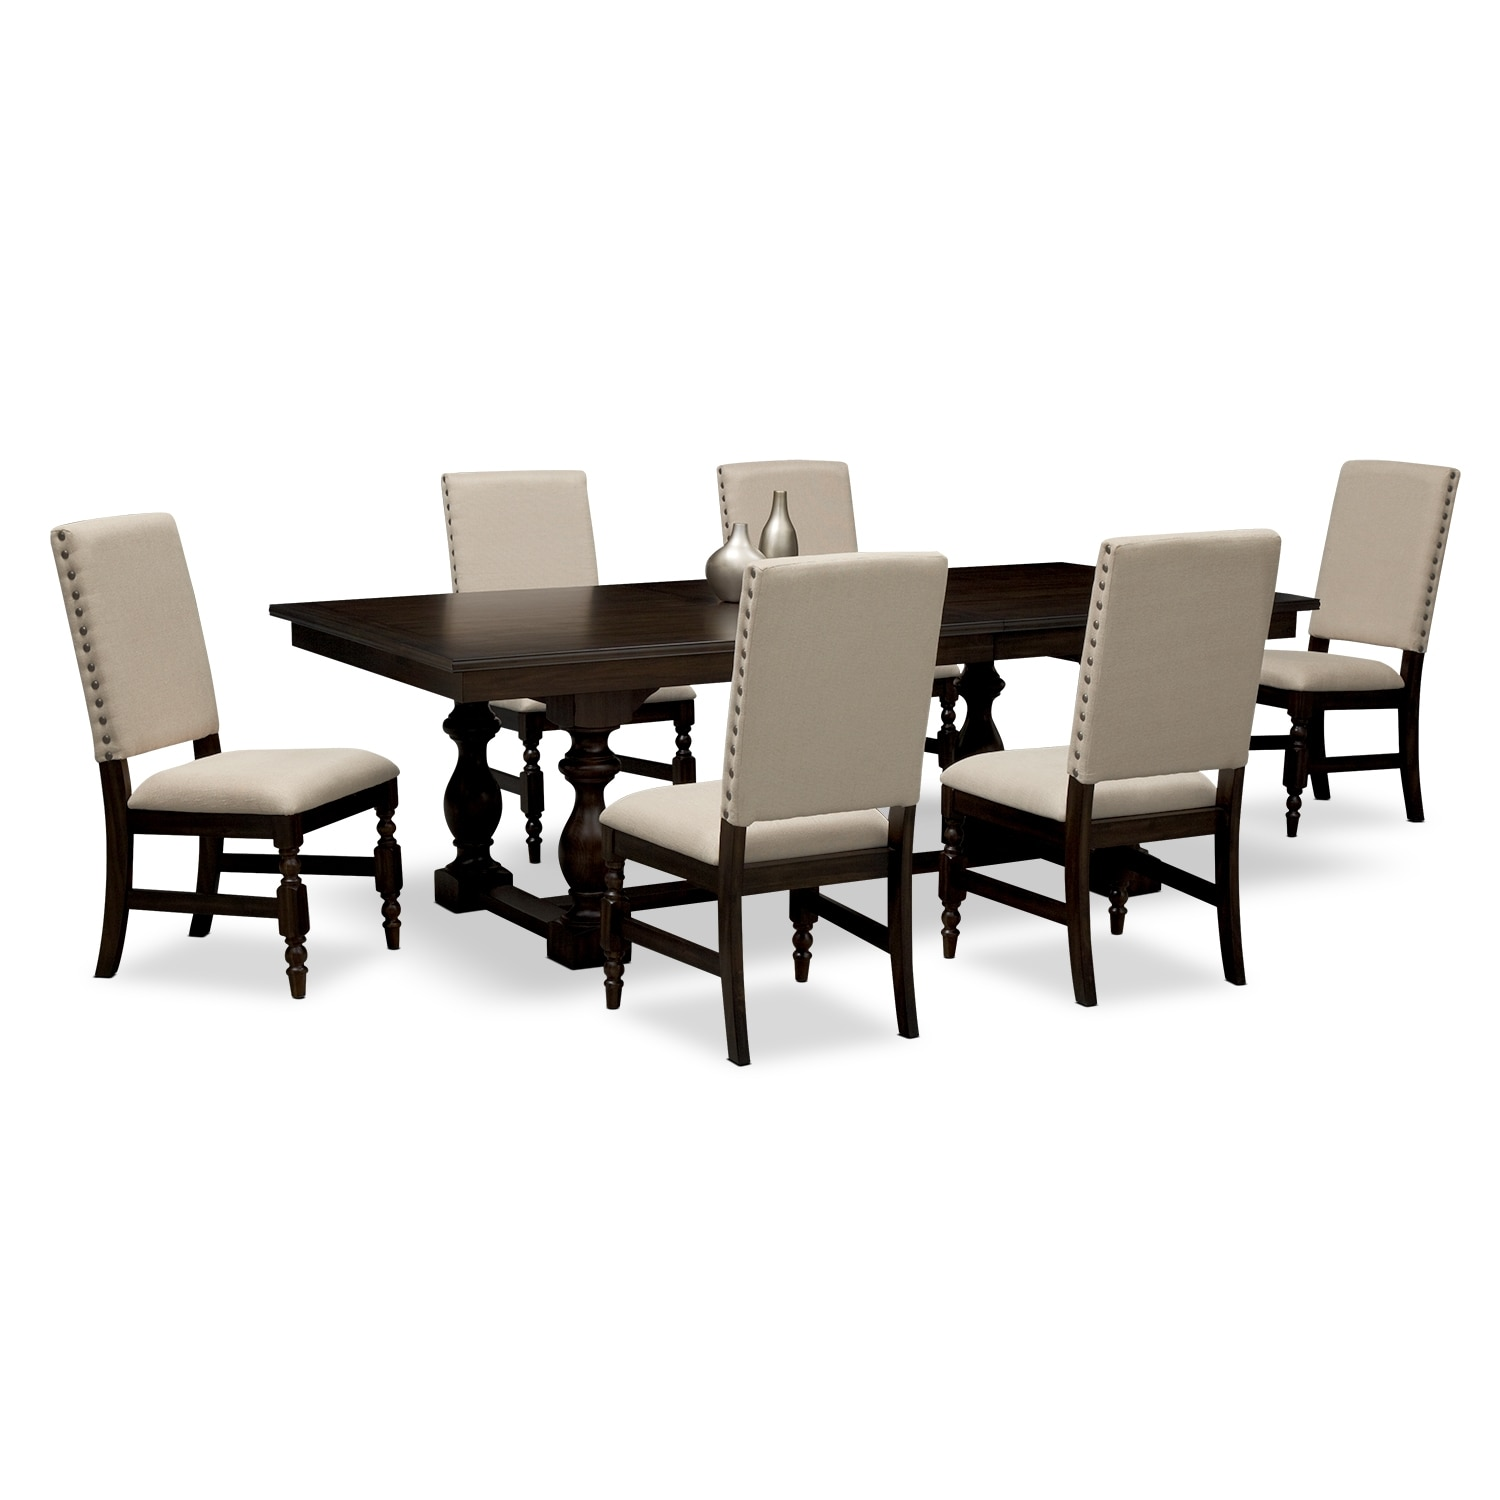 [Ashton 7 Pc. Dining Room]